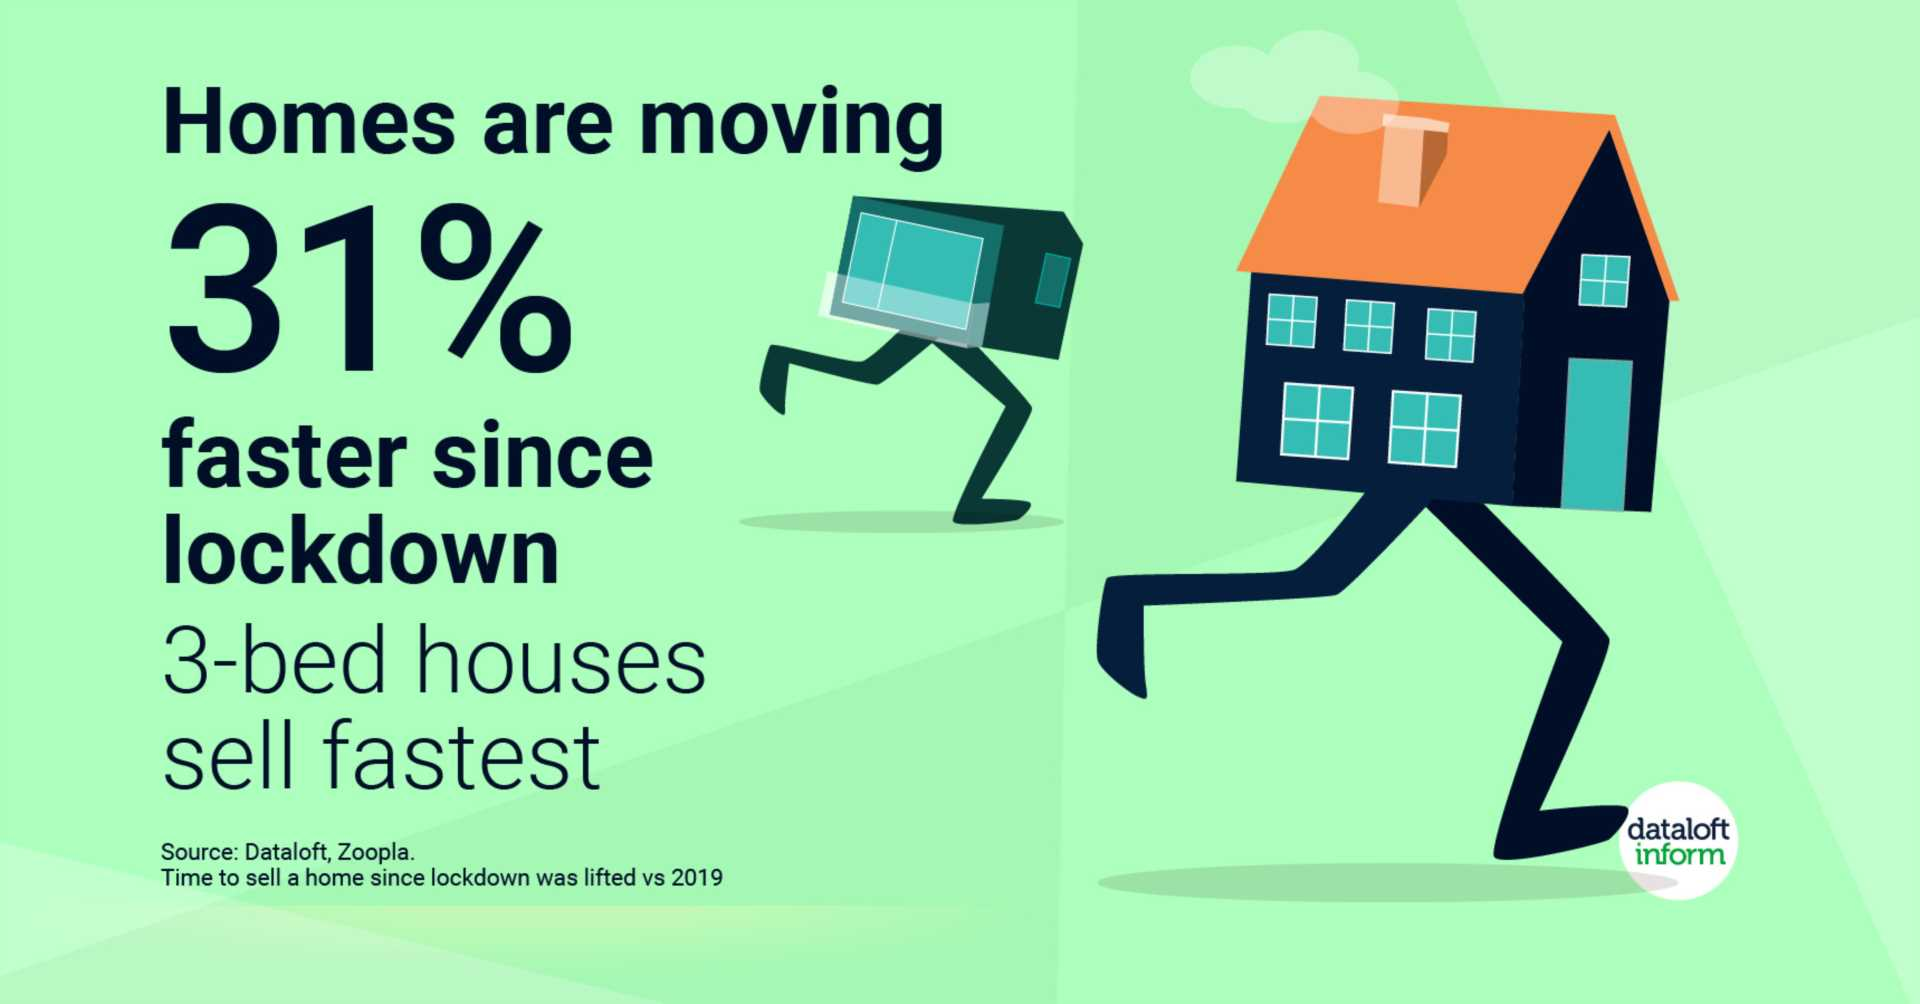 Homes are moving faster since lockdown